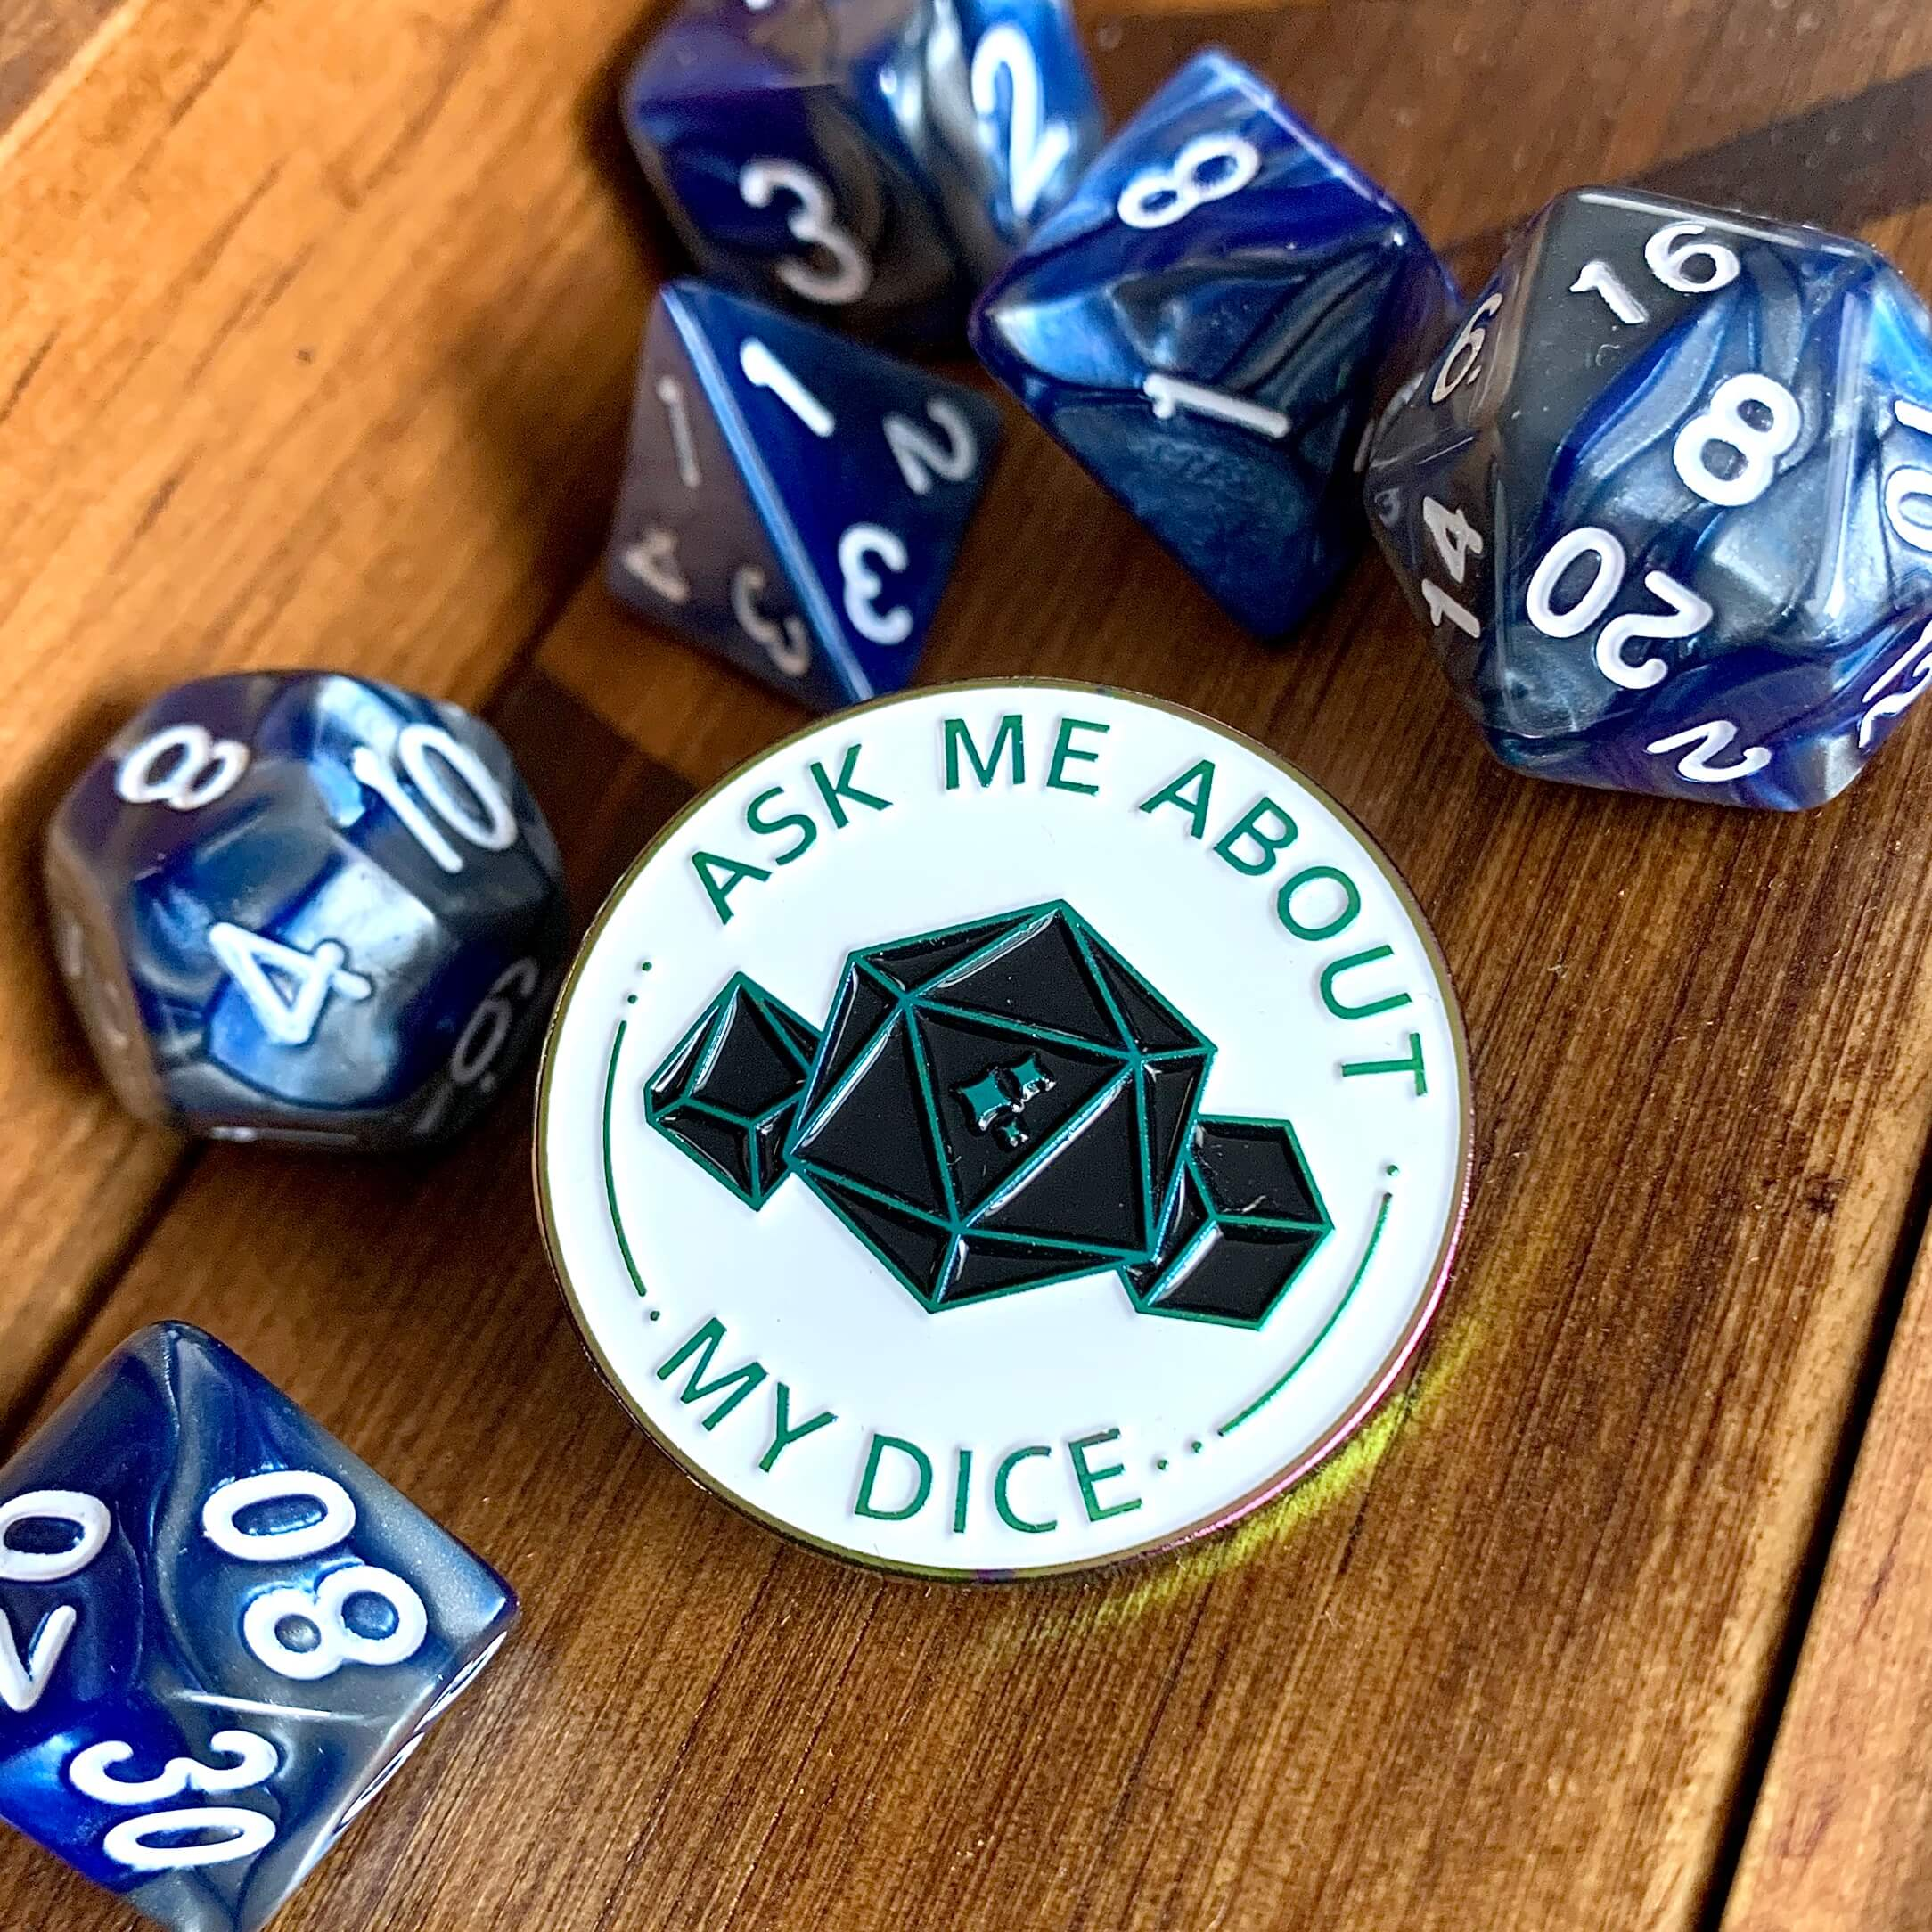 Ask me about my dice